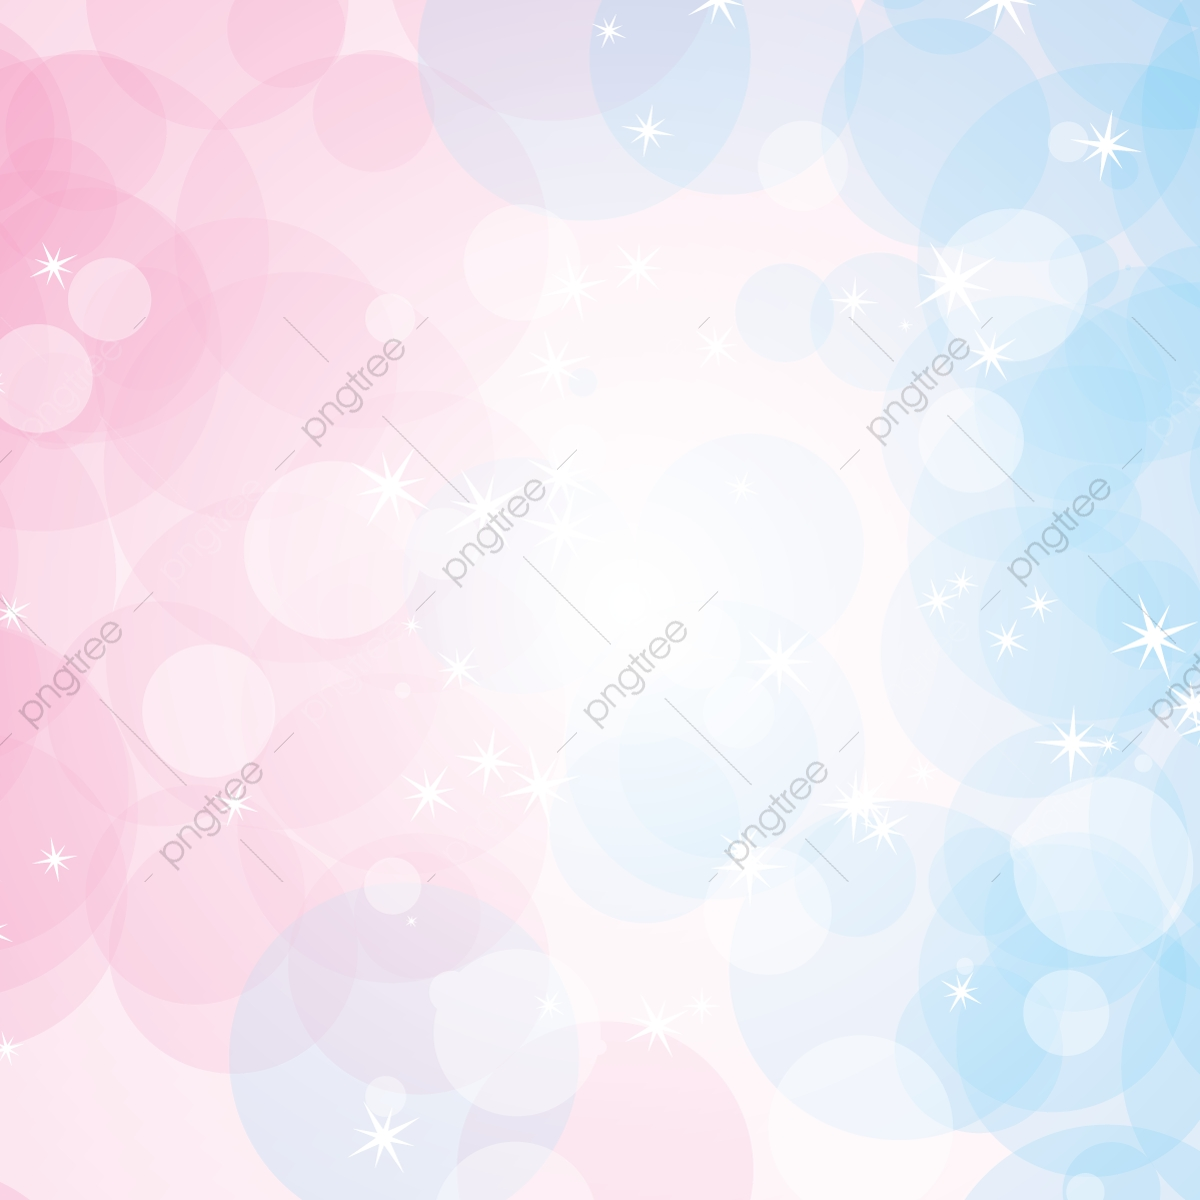 Pink Light Abstract Background Vector, Abstract, Bokeh